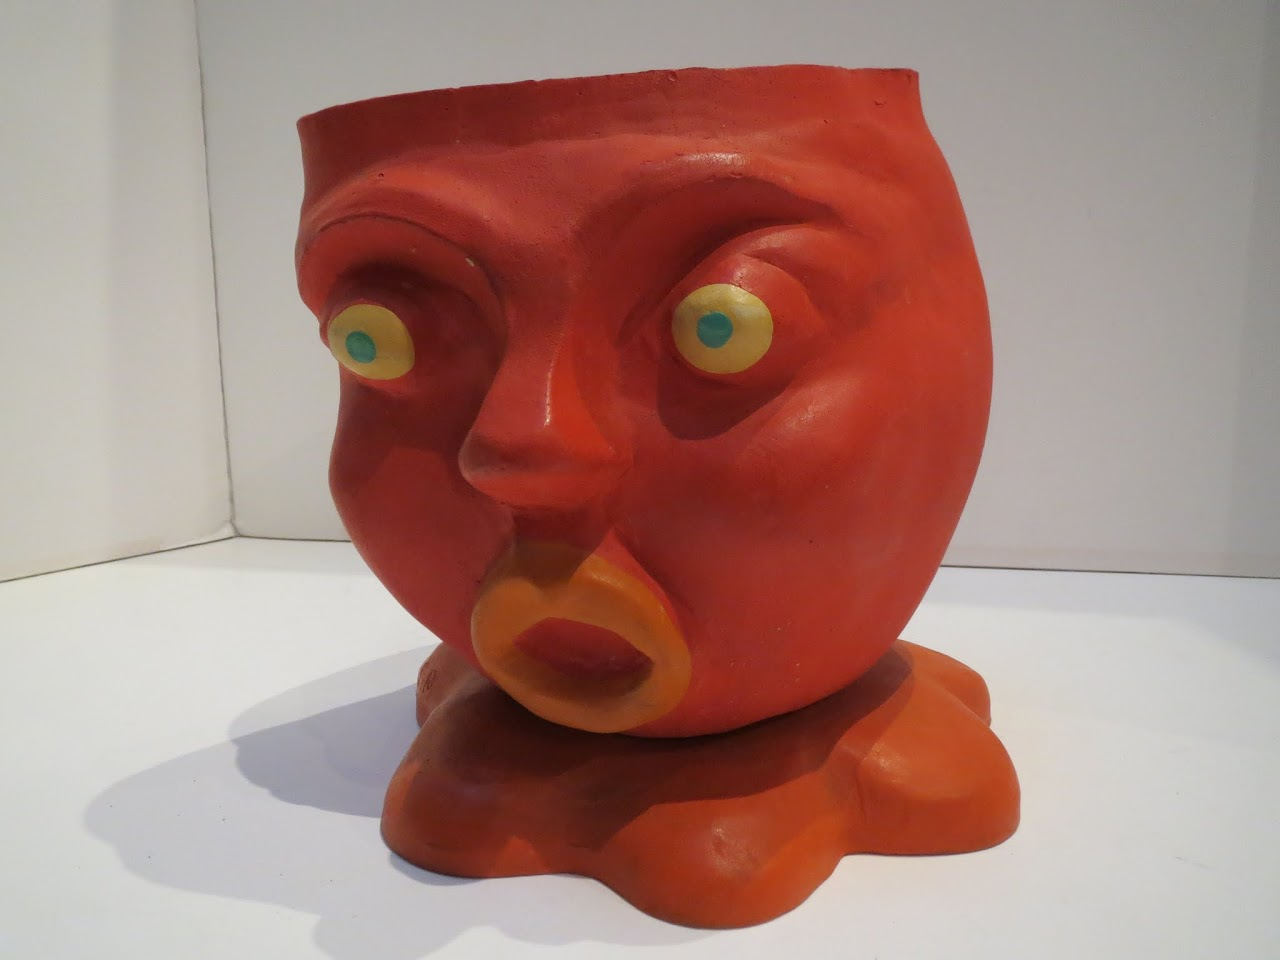 Rubber Shocked Face Planter